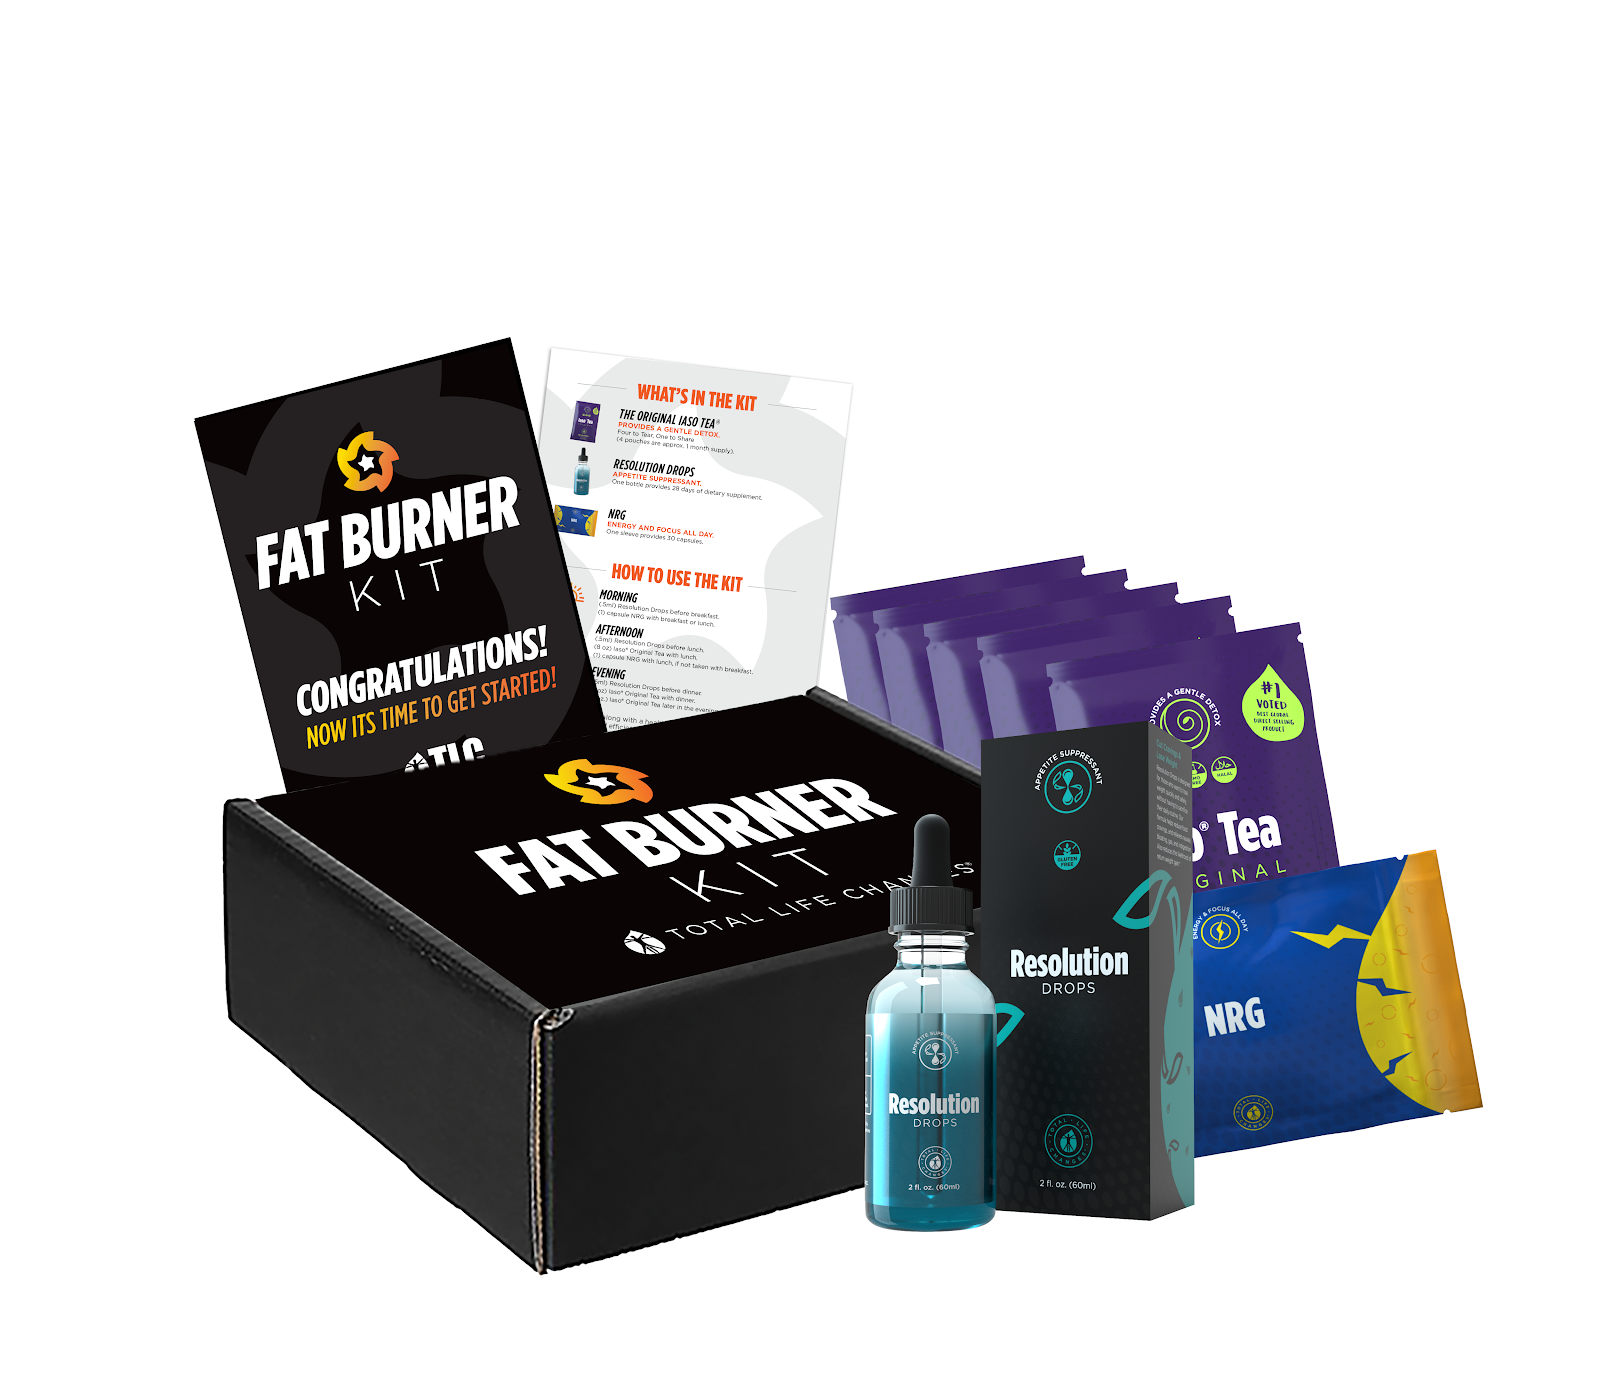 FAT BURNER KIT